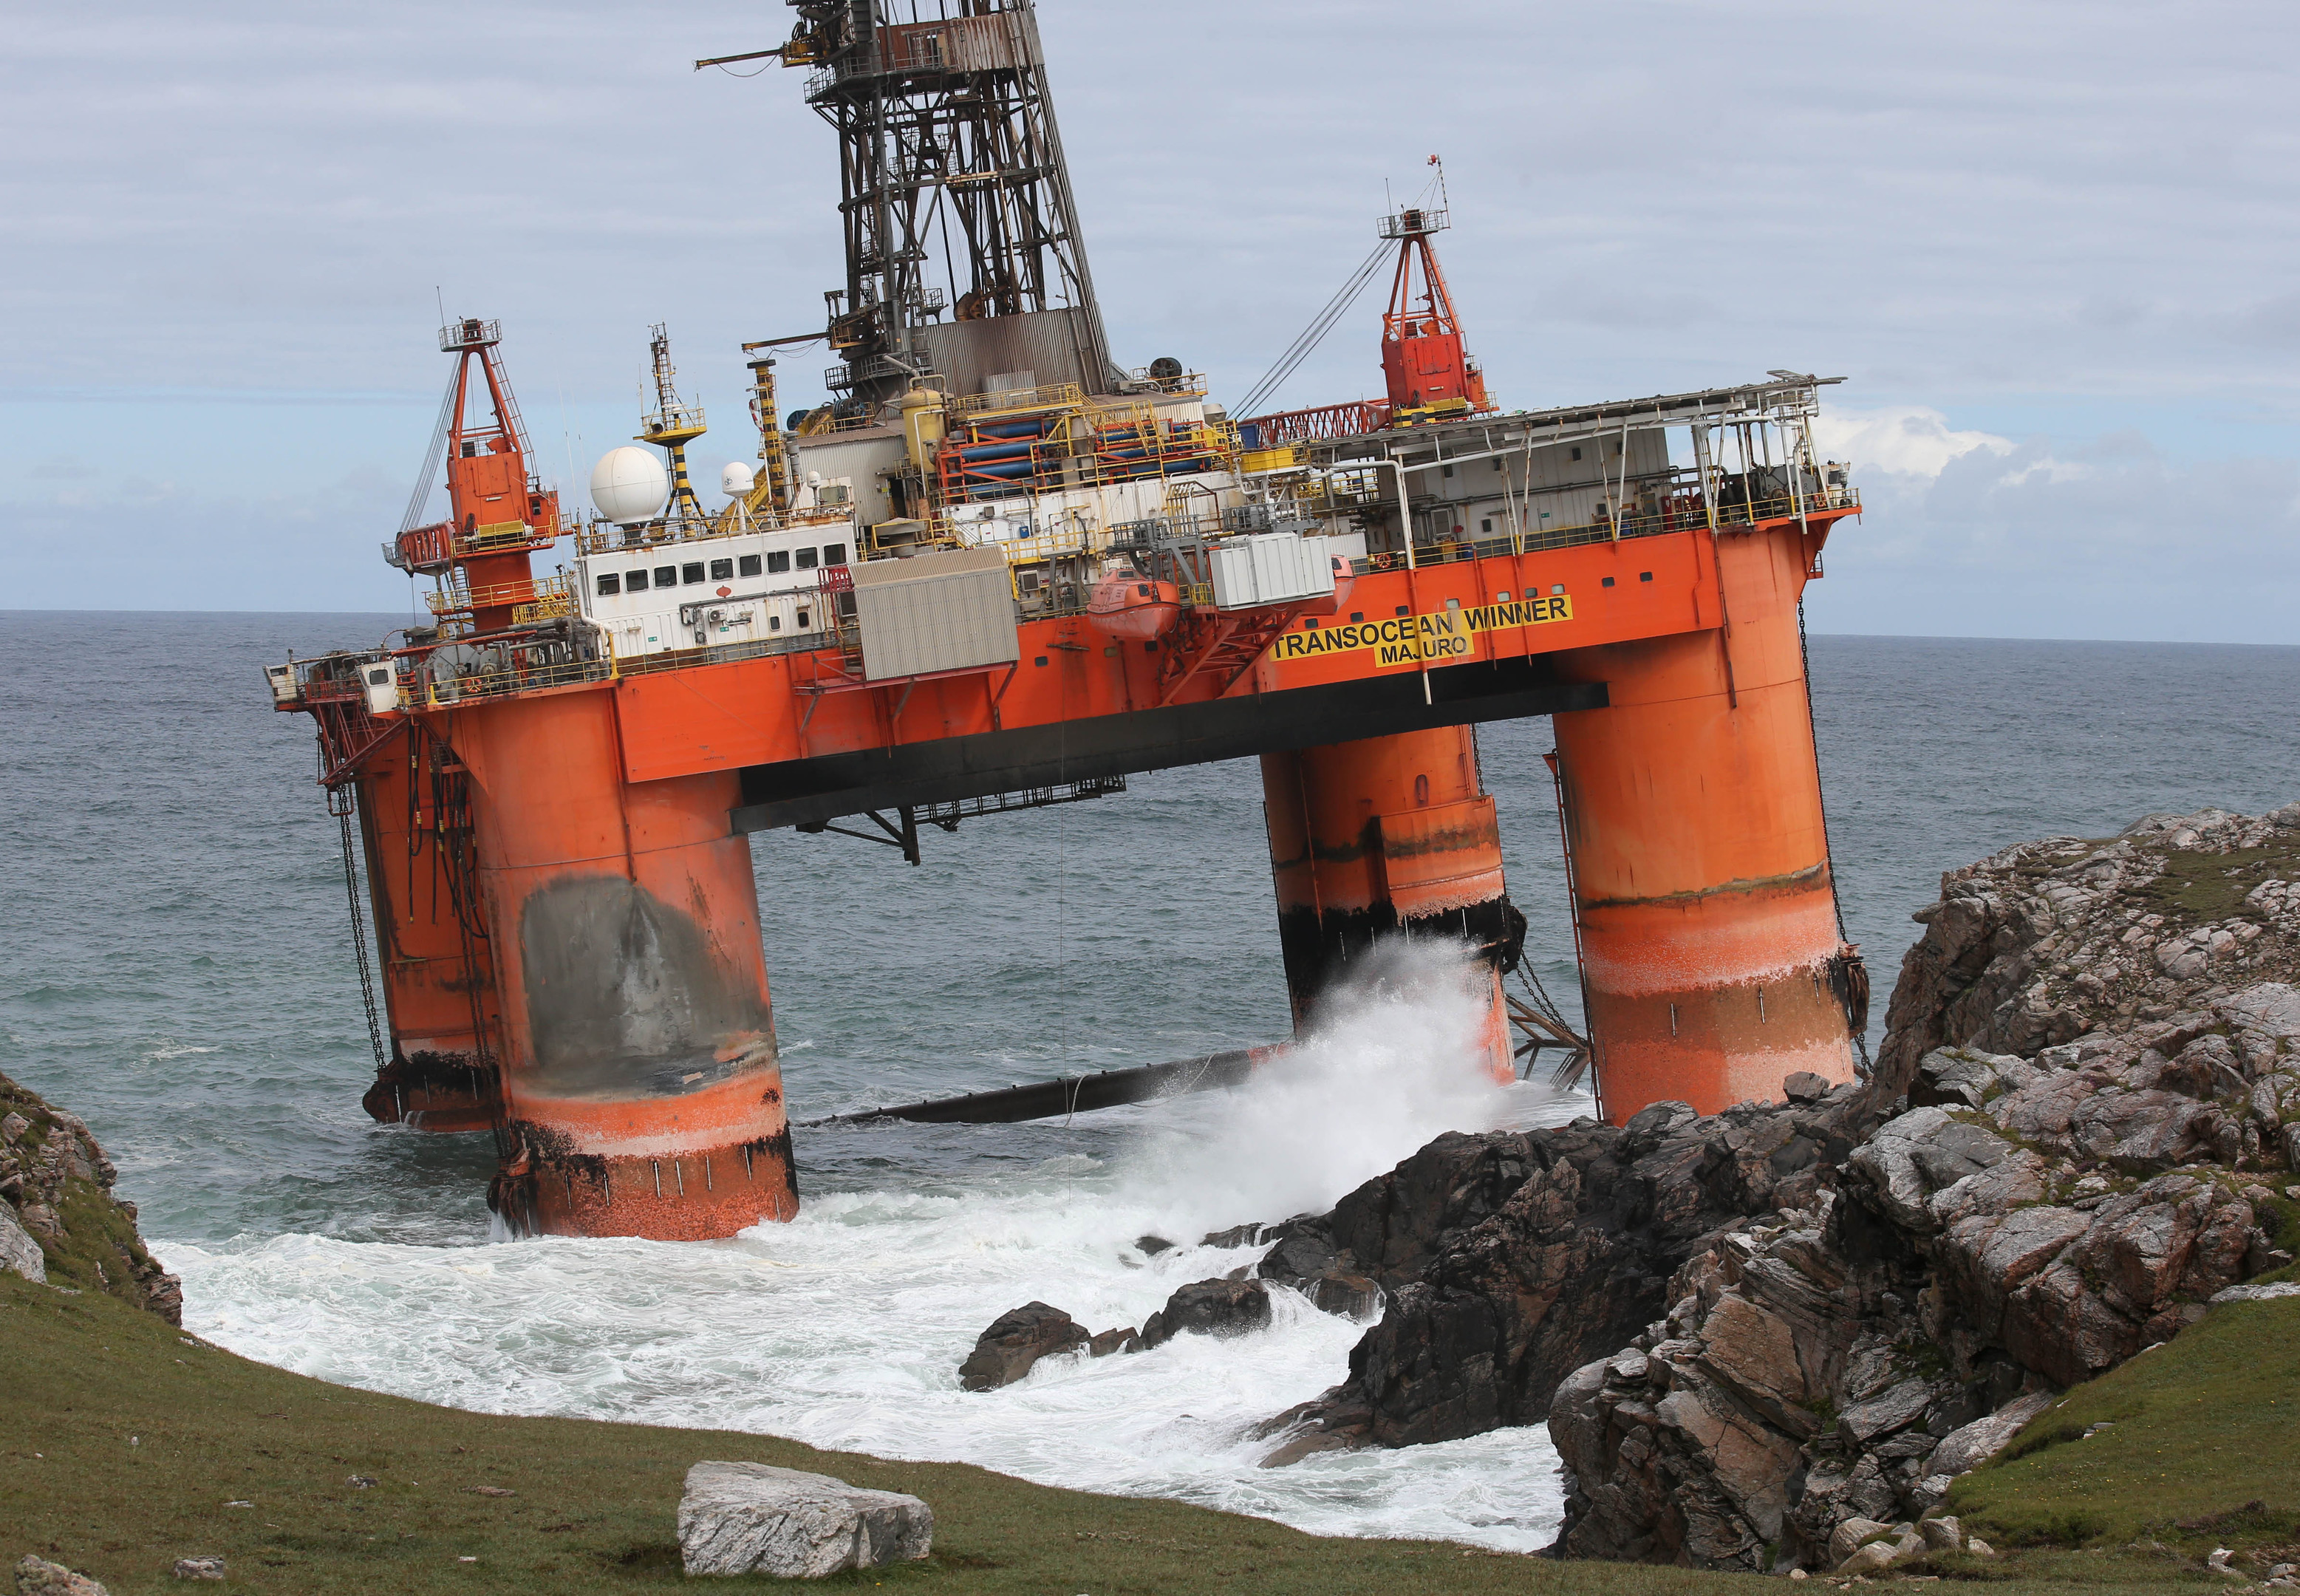 The Transocean Winner drilling rig after it ran aground on the beach of Dalmore in the Carloway area of the Isle of Lewis. (Andrew Milligan/PA Wire)